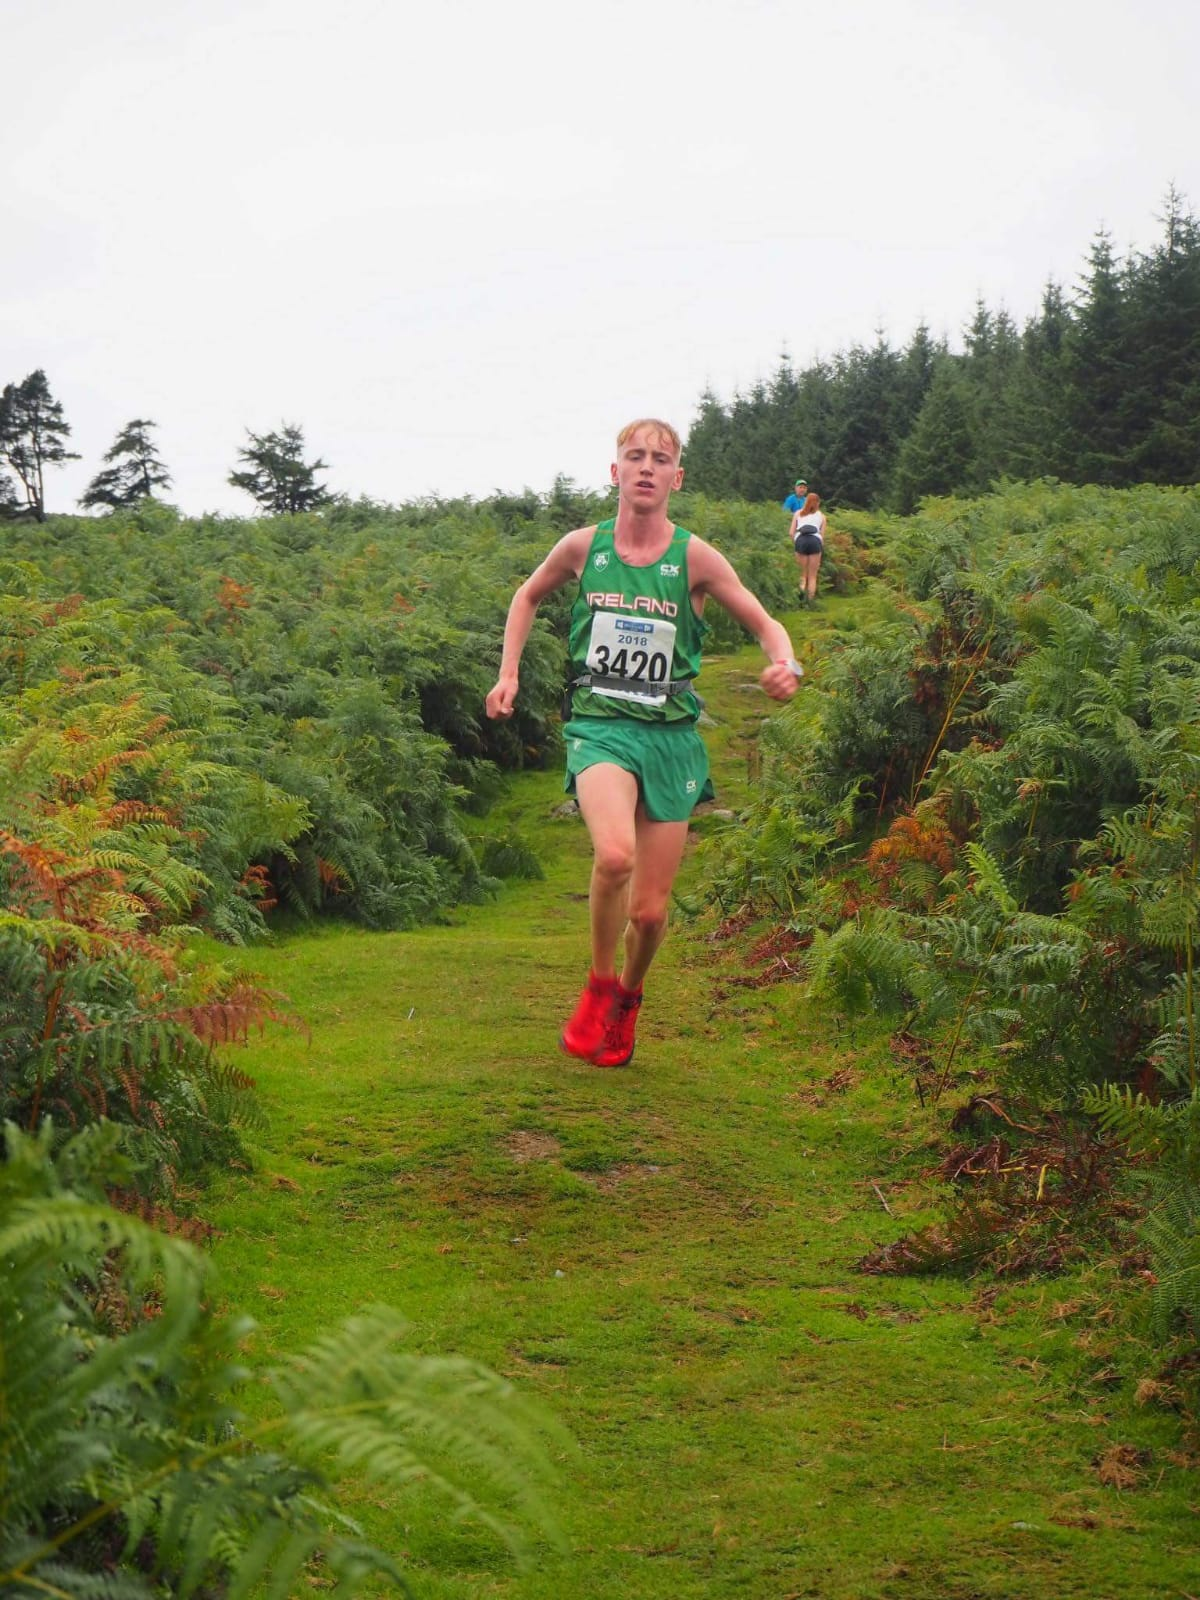 Aaron Smith Representing Ireland in Glendalough